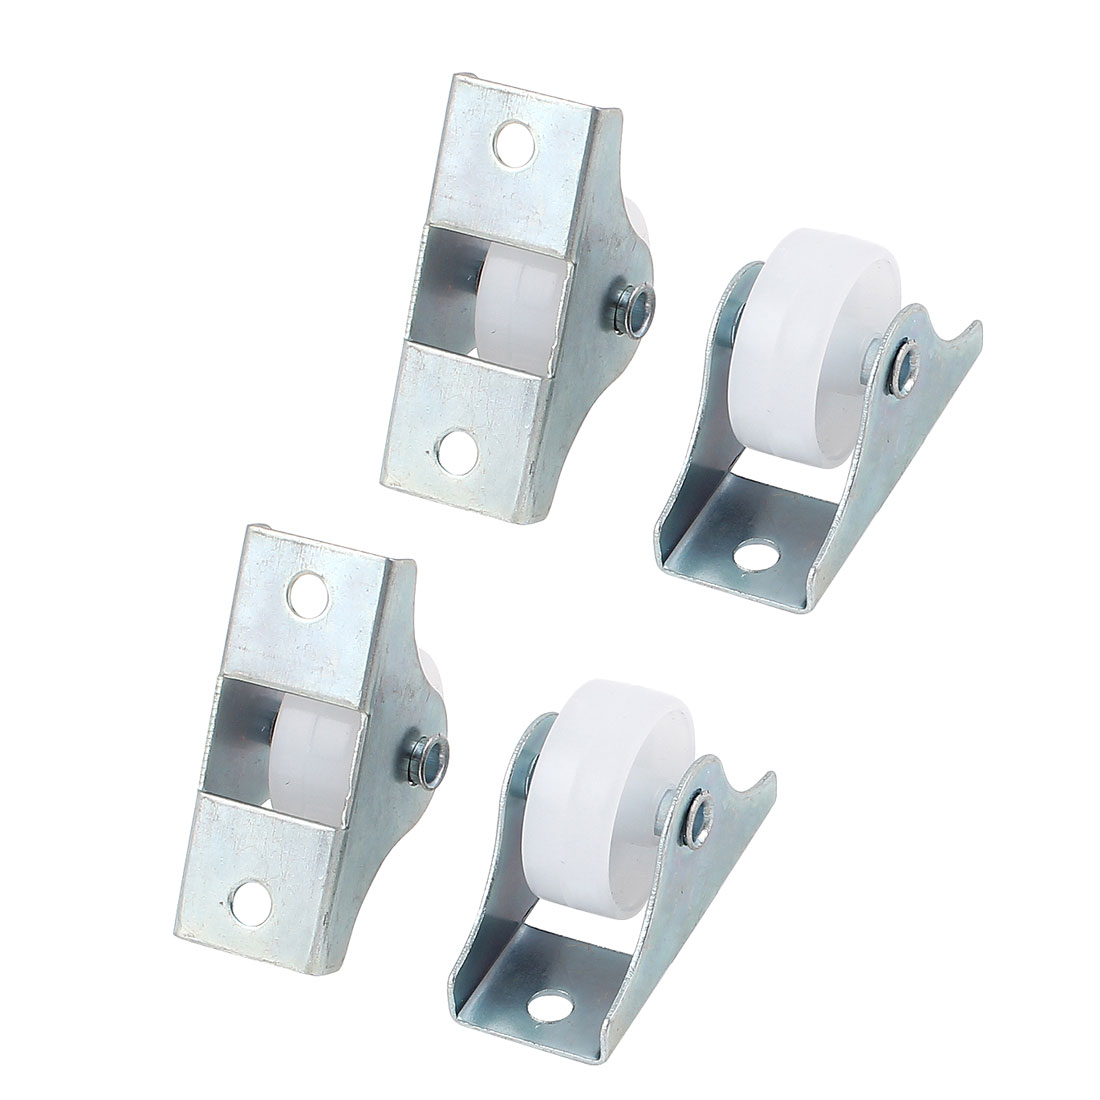 "4pcs Metal Rectangle Top Plate 25mm 1"" Dia Round Nylon Caster Wheels for Shopping Carts"